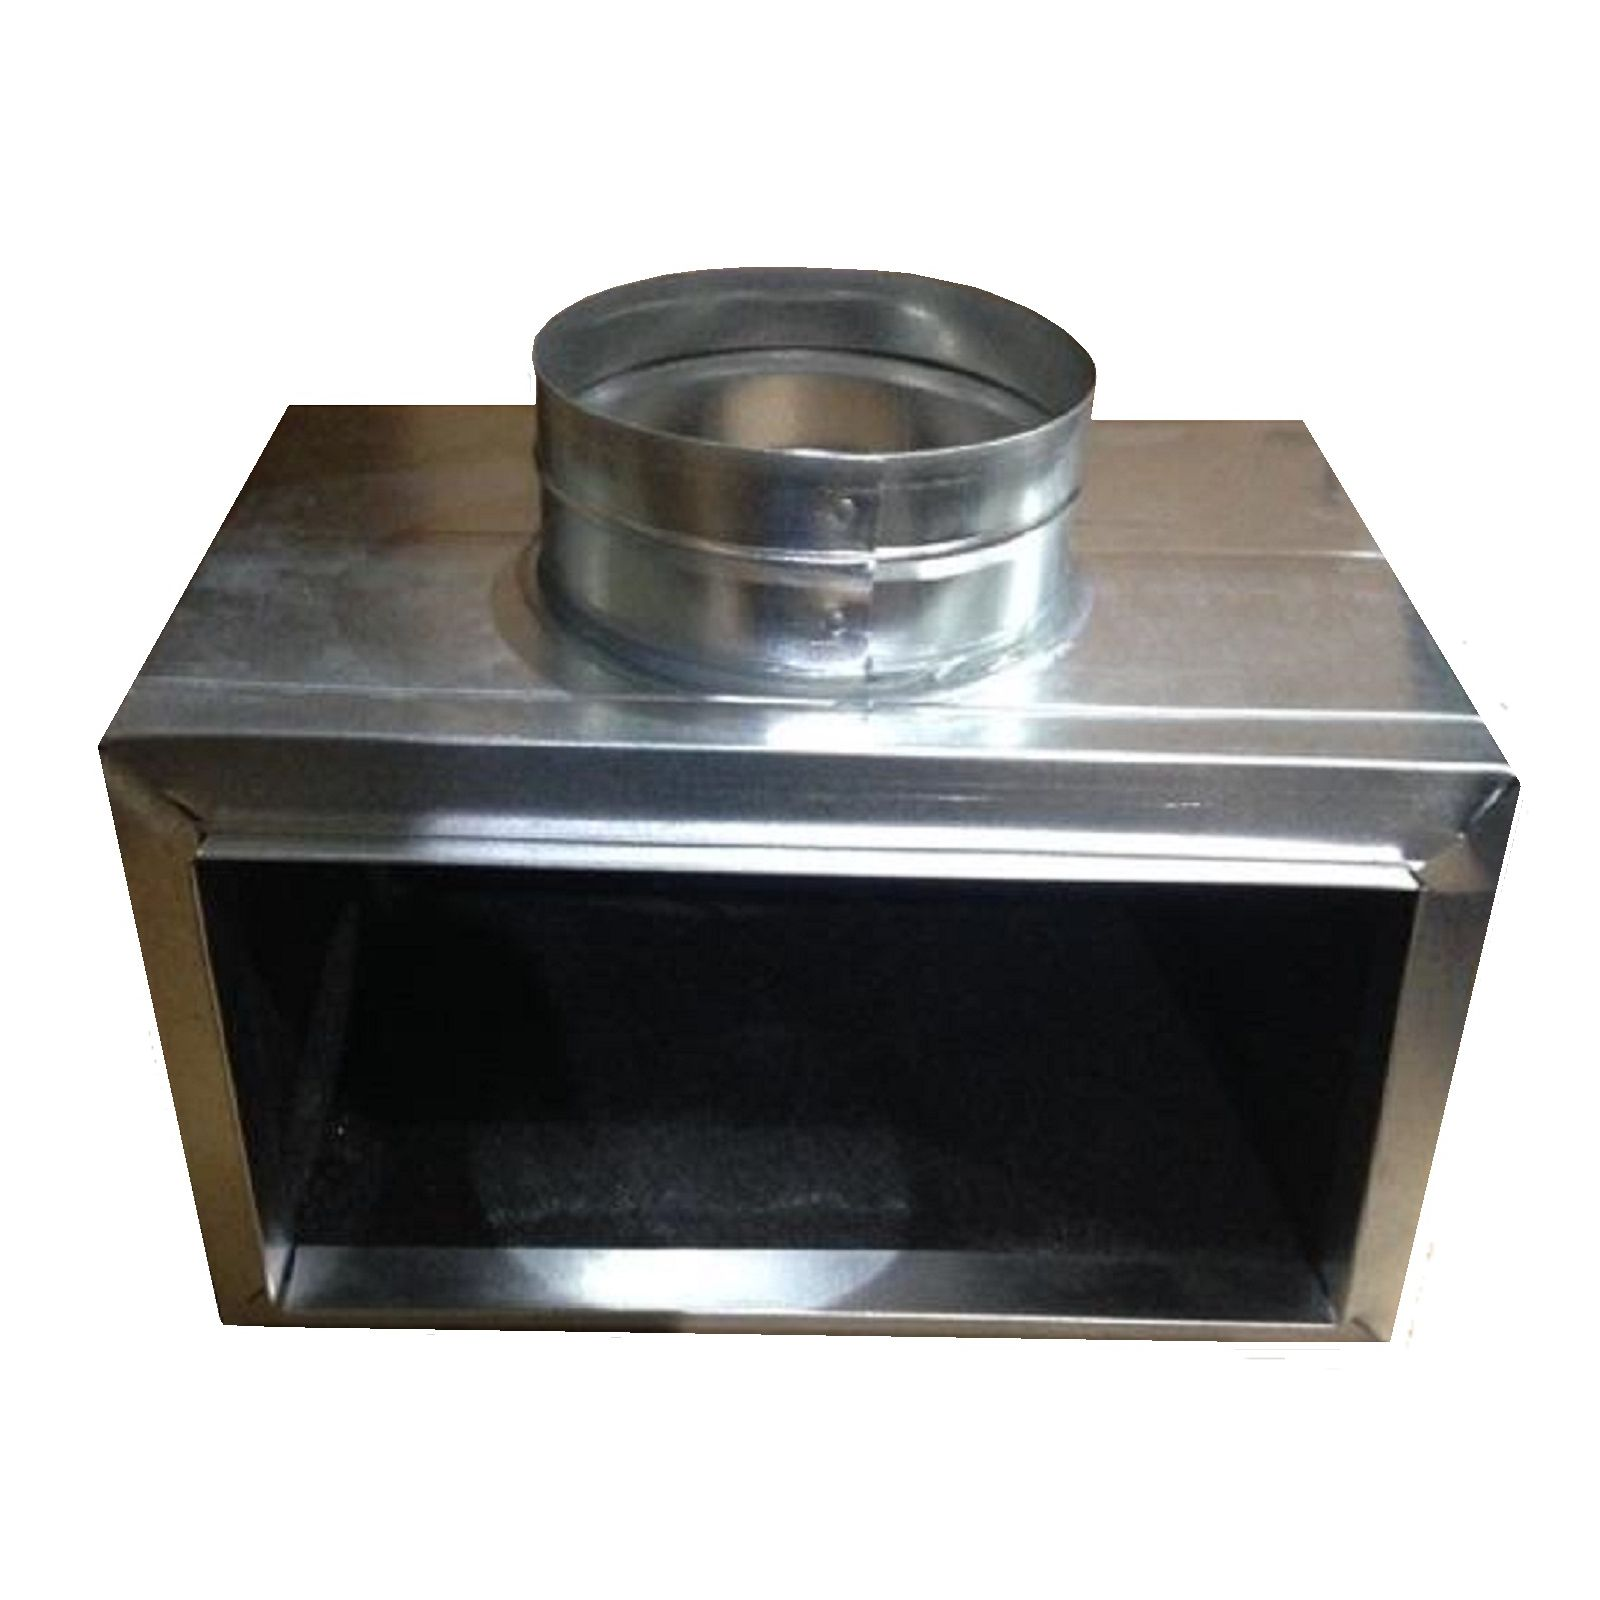 "Snap-Rite 10X06X073109NF - Side-Out Box Non-Flanged 9"" Deep, 10"" x 6"" x 7"" - R4"